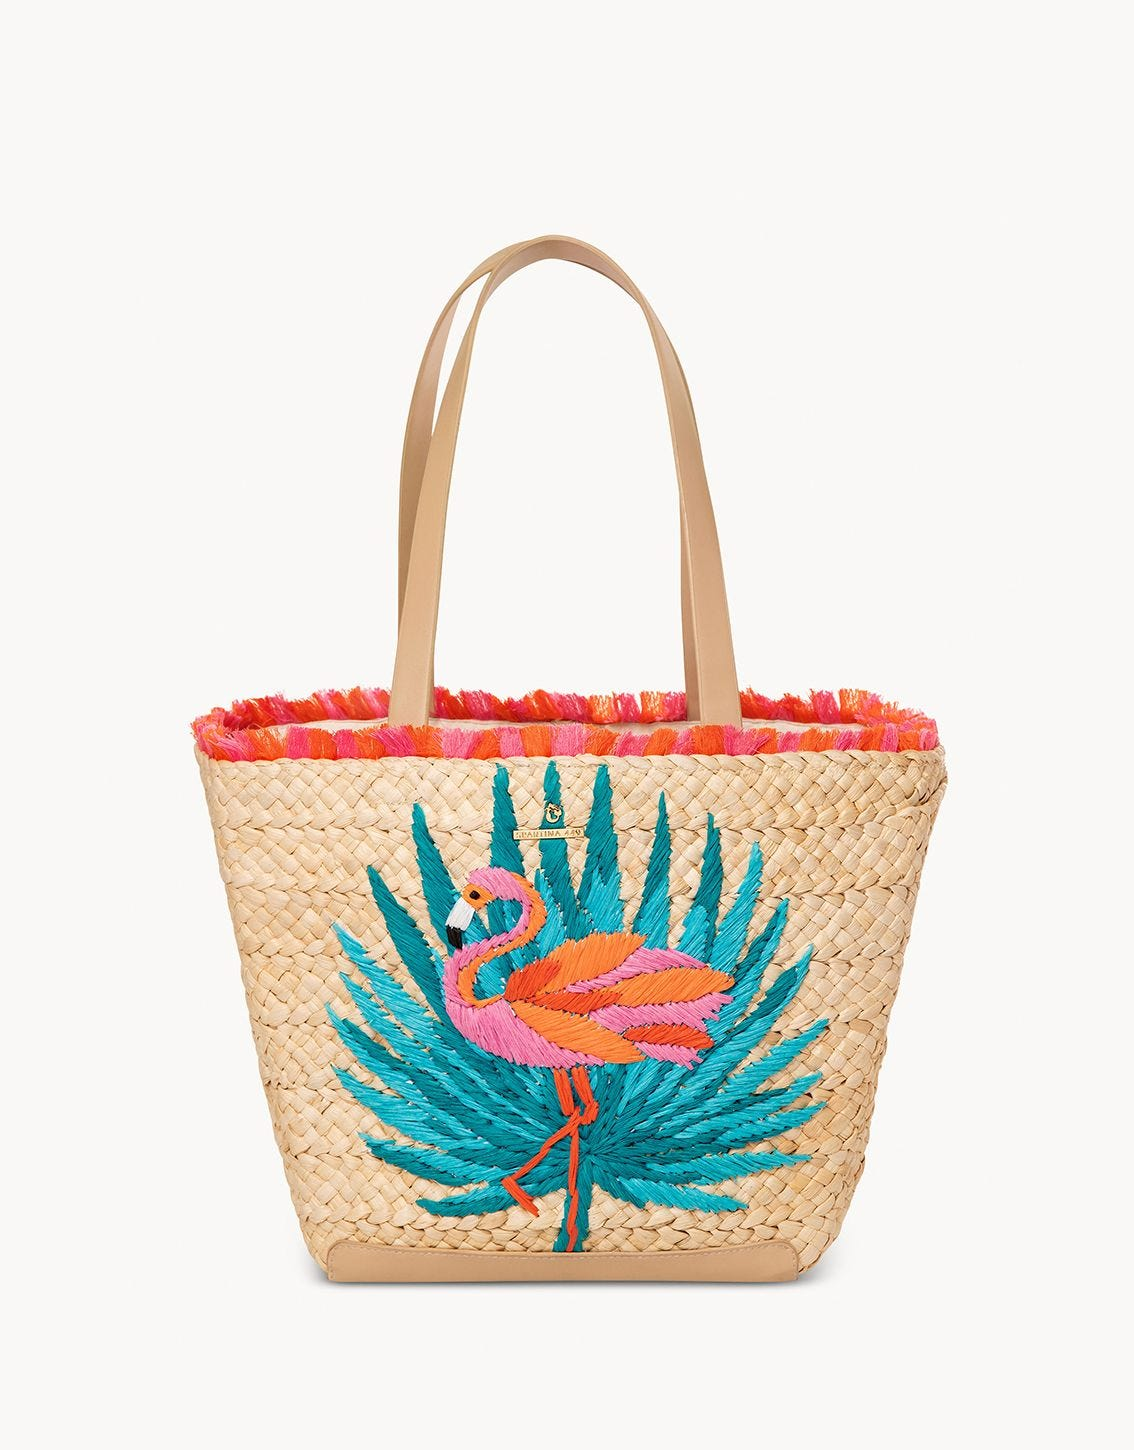 Moreland Embroidered Straw Tote - 658423